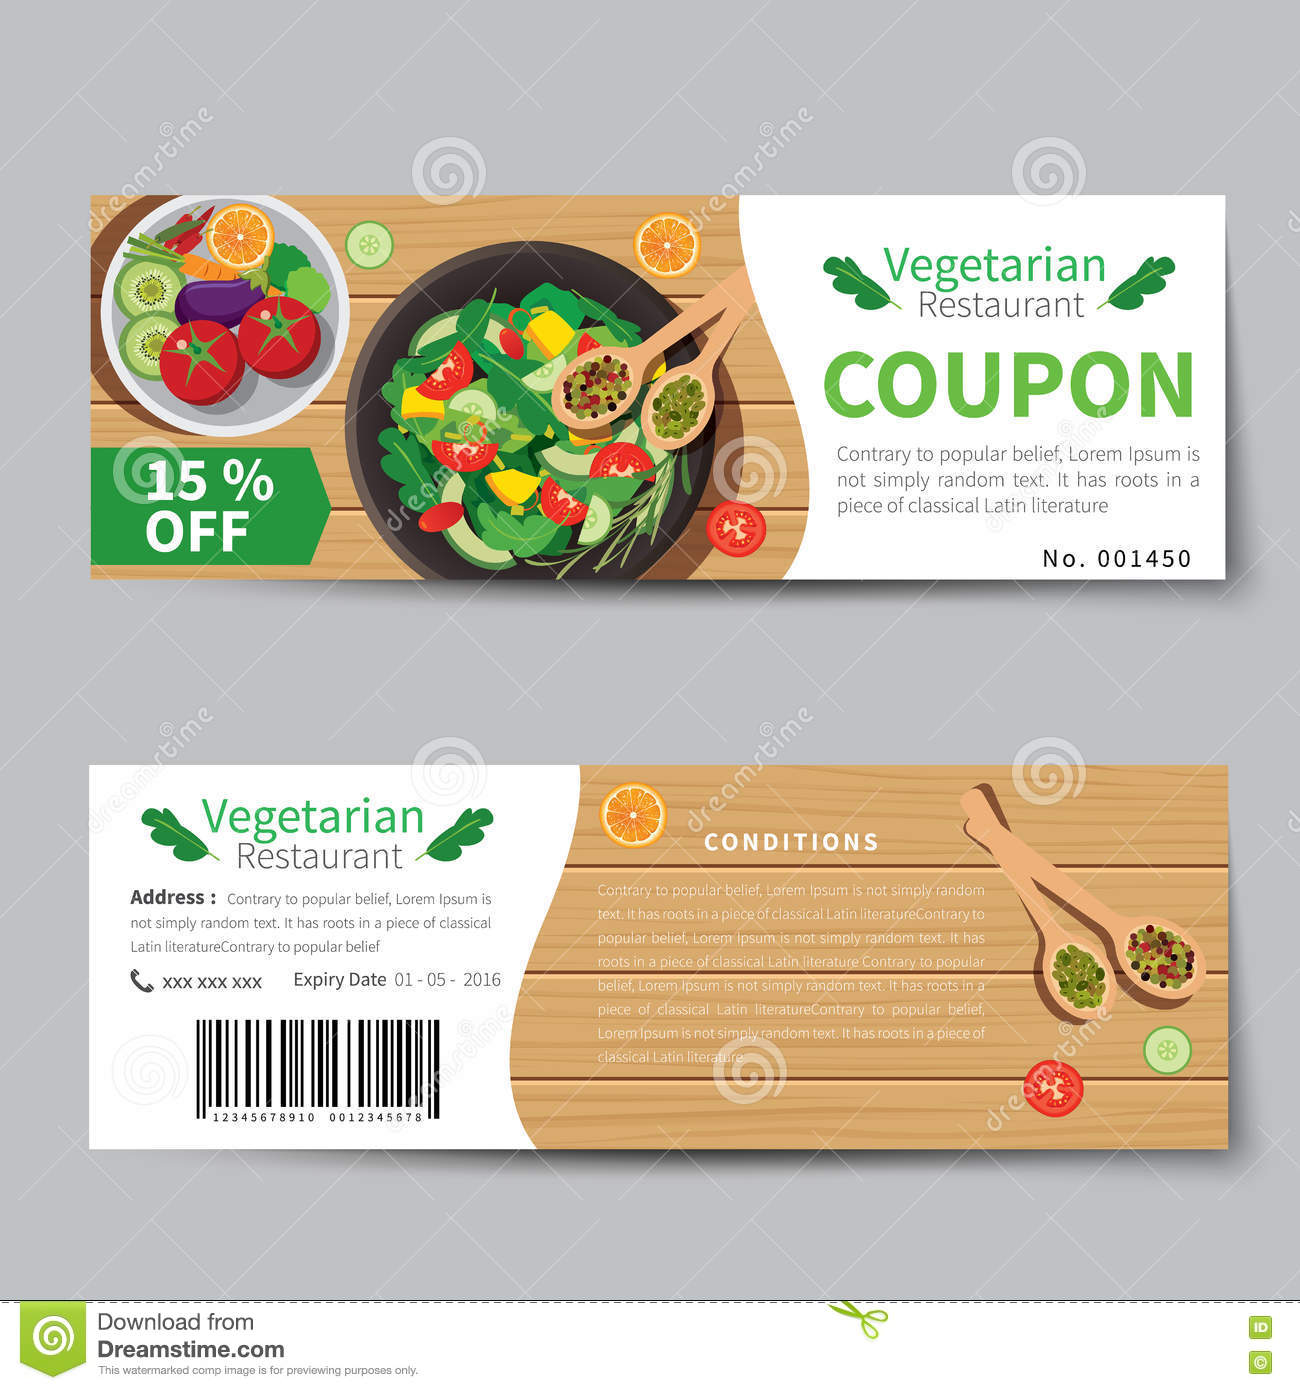 Royalty Free Vector. Download Vegetarian Food Coupon Discount Template ...